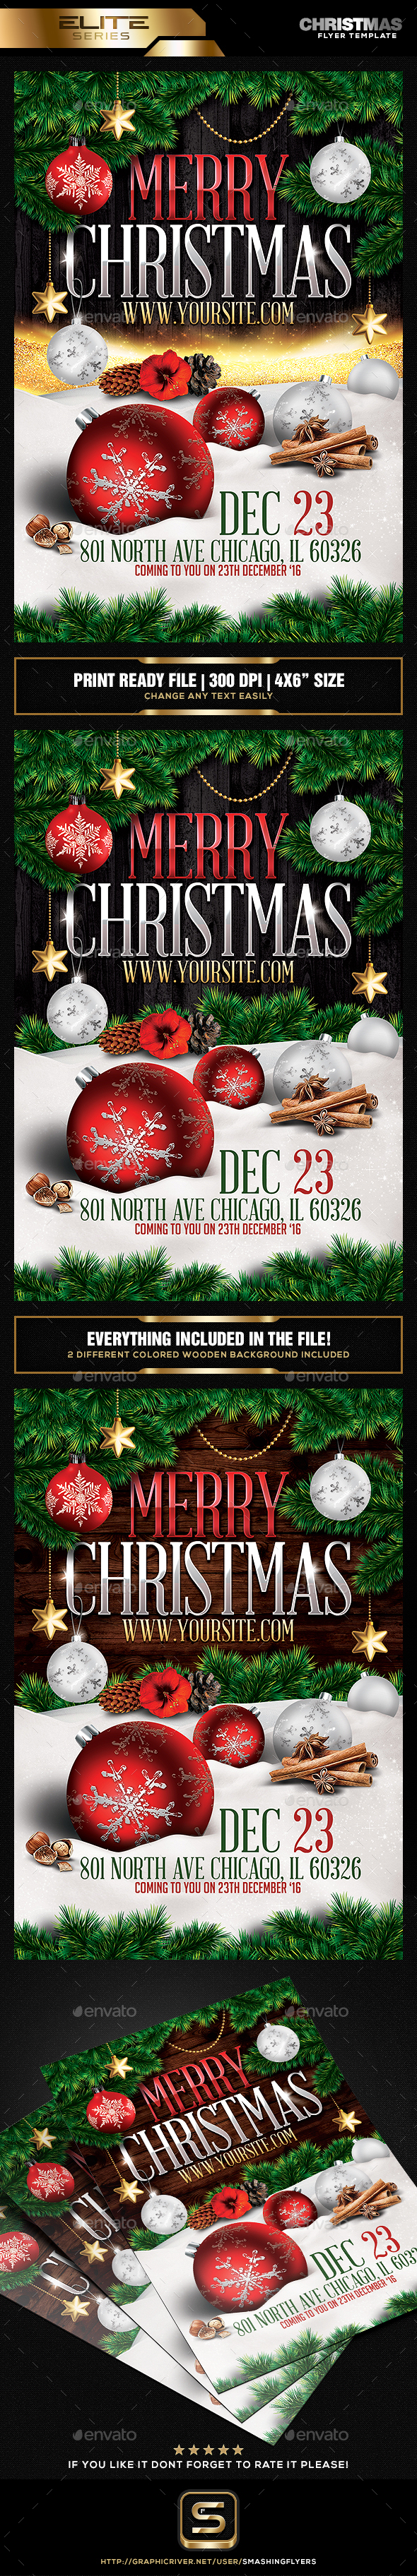 Merry Christmas Party Flyer Temaplate - Holidays Events